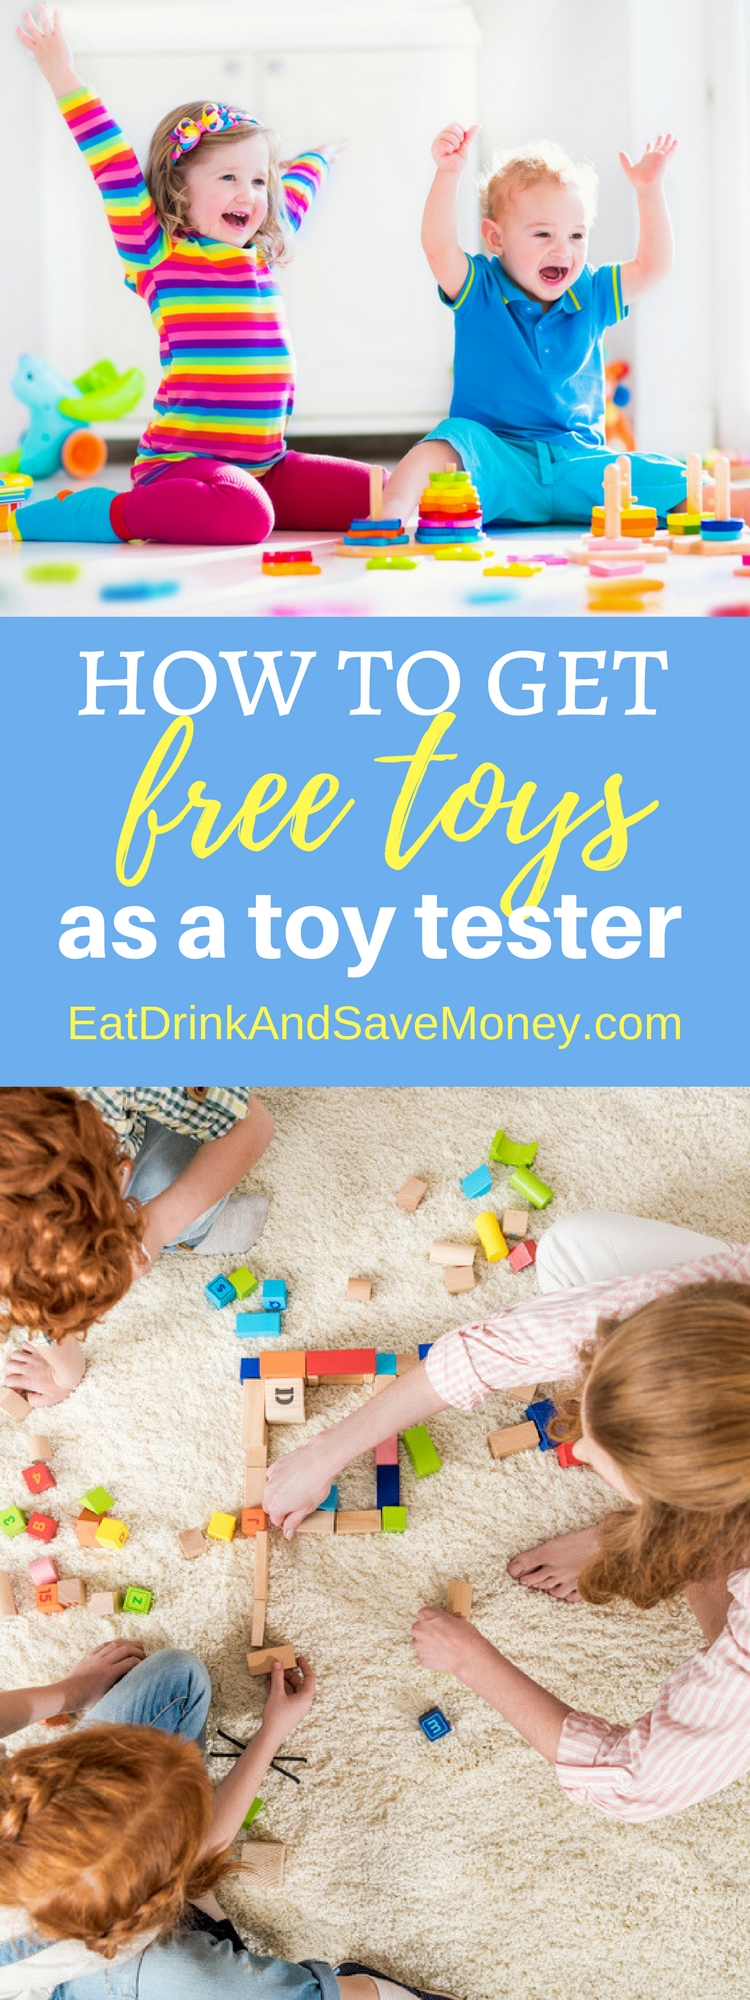 How to get free toys as a toy tester. Get free toys by signing you kid up as a toy tester. Save money on toys.